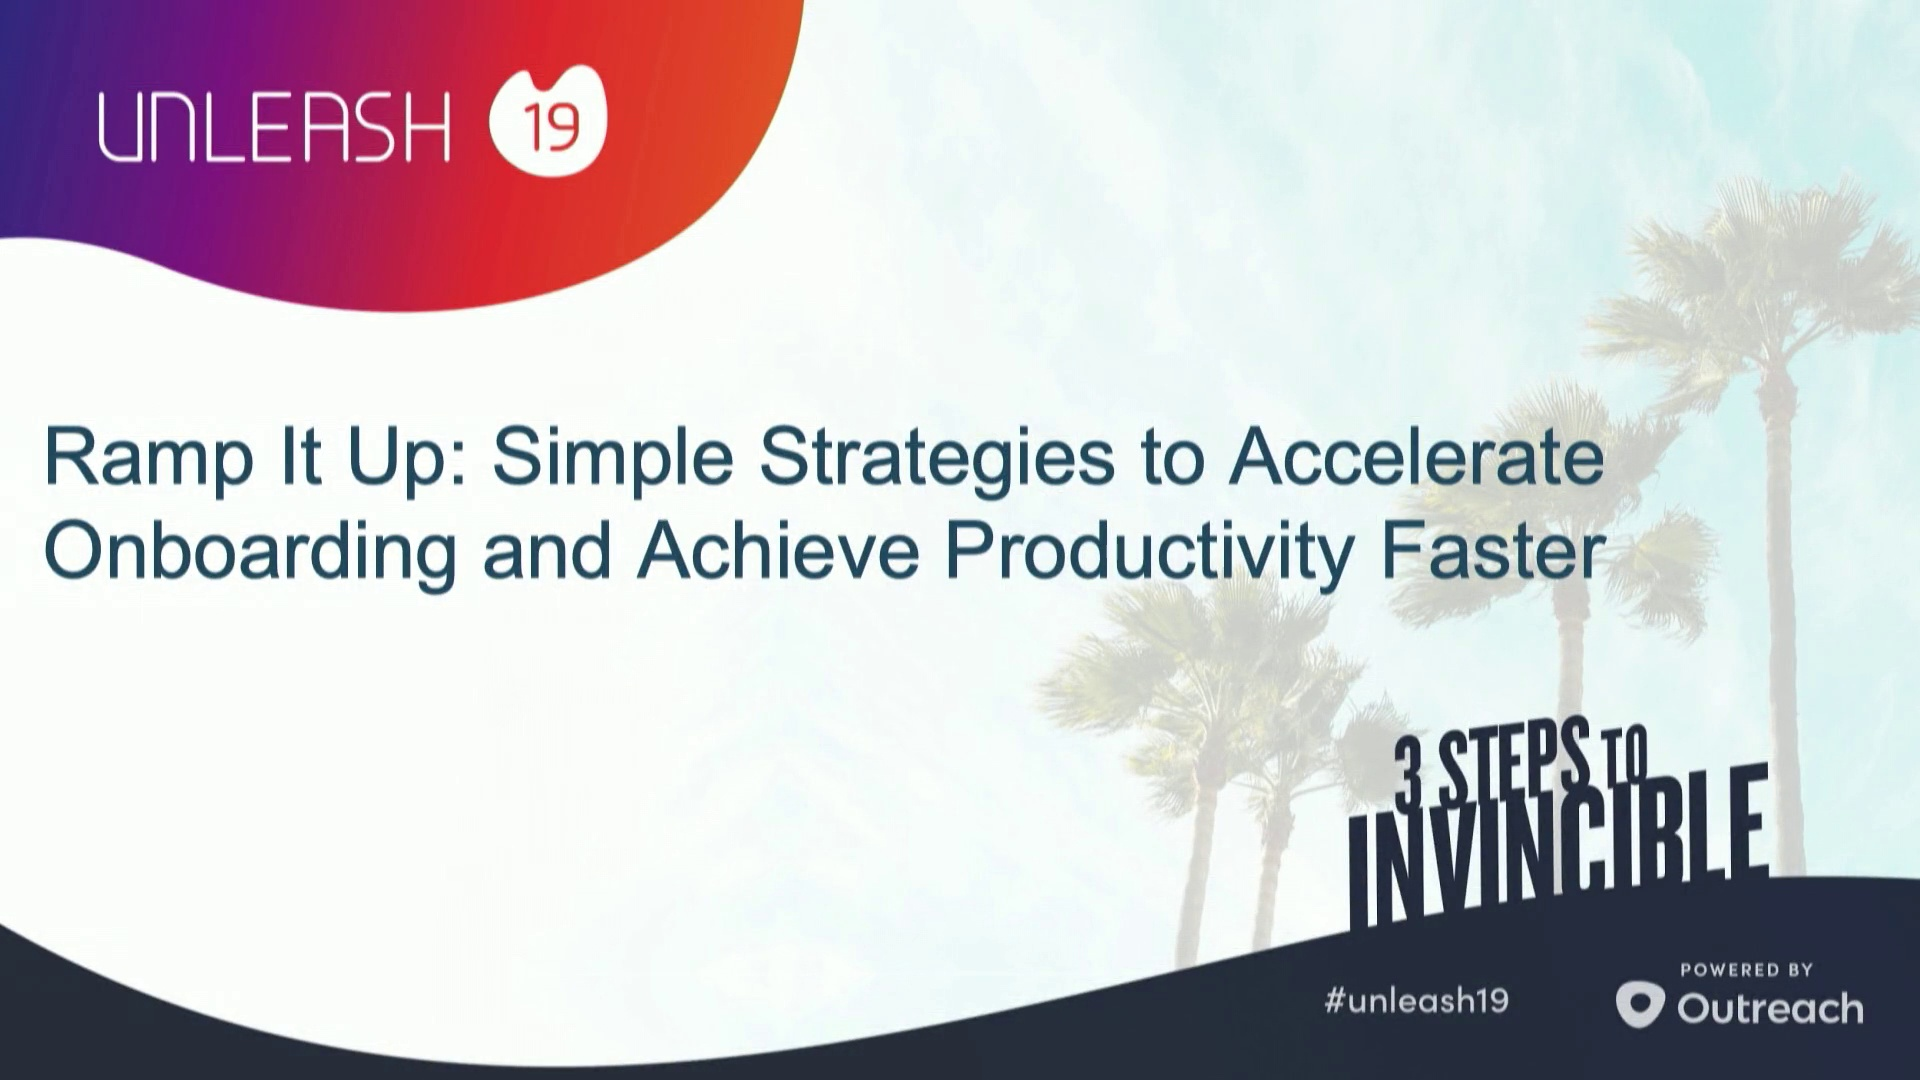 Ramp It Up Simple Strategies to Accelerate Onboarding and Achieve Productivity Faster - Brian Remington, Kristen Podger, Adam Clark